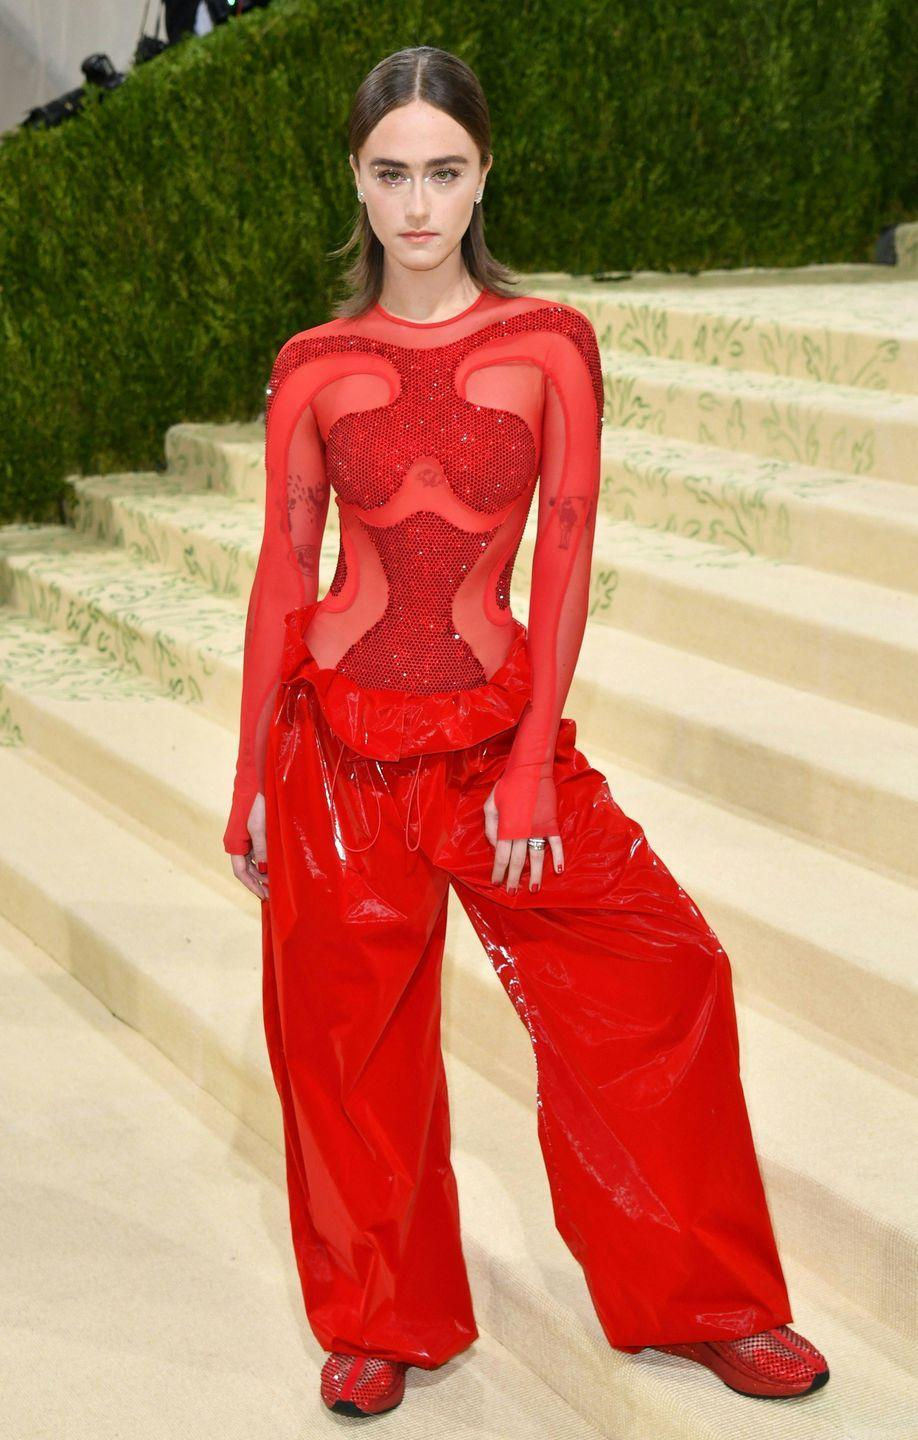 <p>The stylish stepdaughter of Vice-President Kamala Harris stepped onto the carpet in a Stella McCartney crystal and mesh bodysuit with matching pants and sneakers, somehow managing to look like a space princess, an Olympic athlete, and a superhero all at the same time. </p>